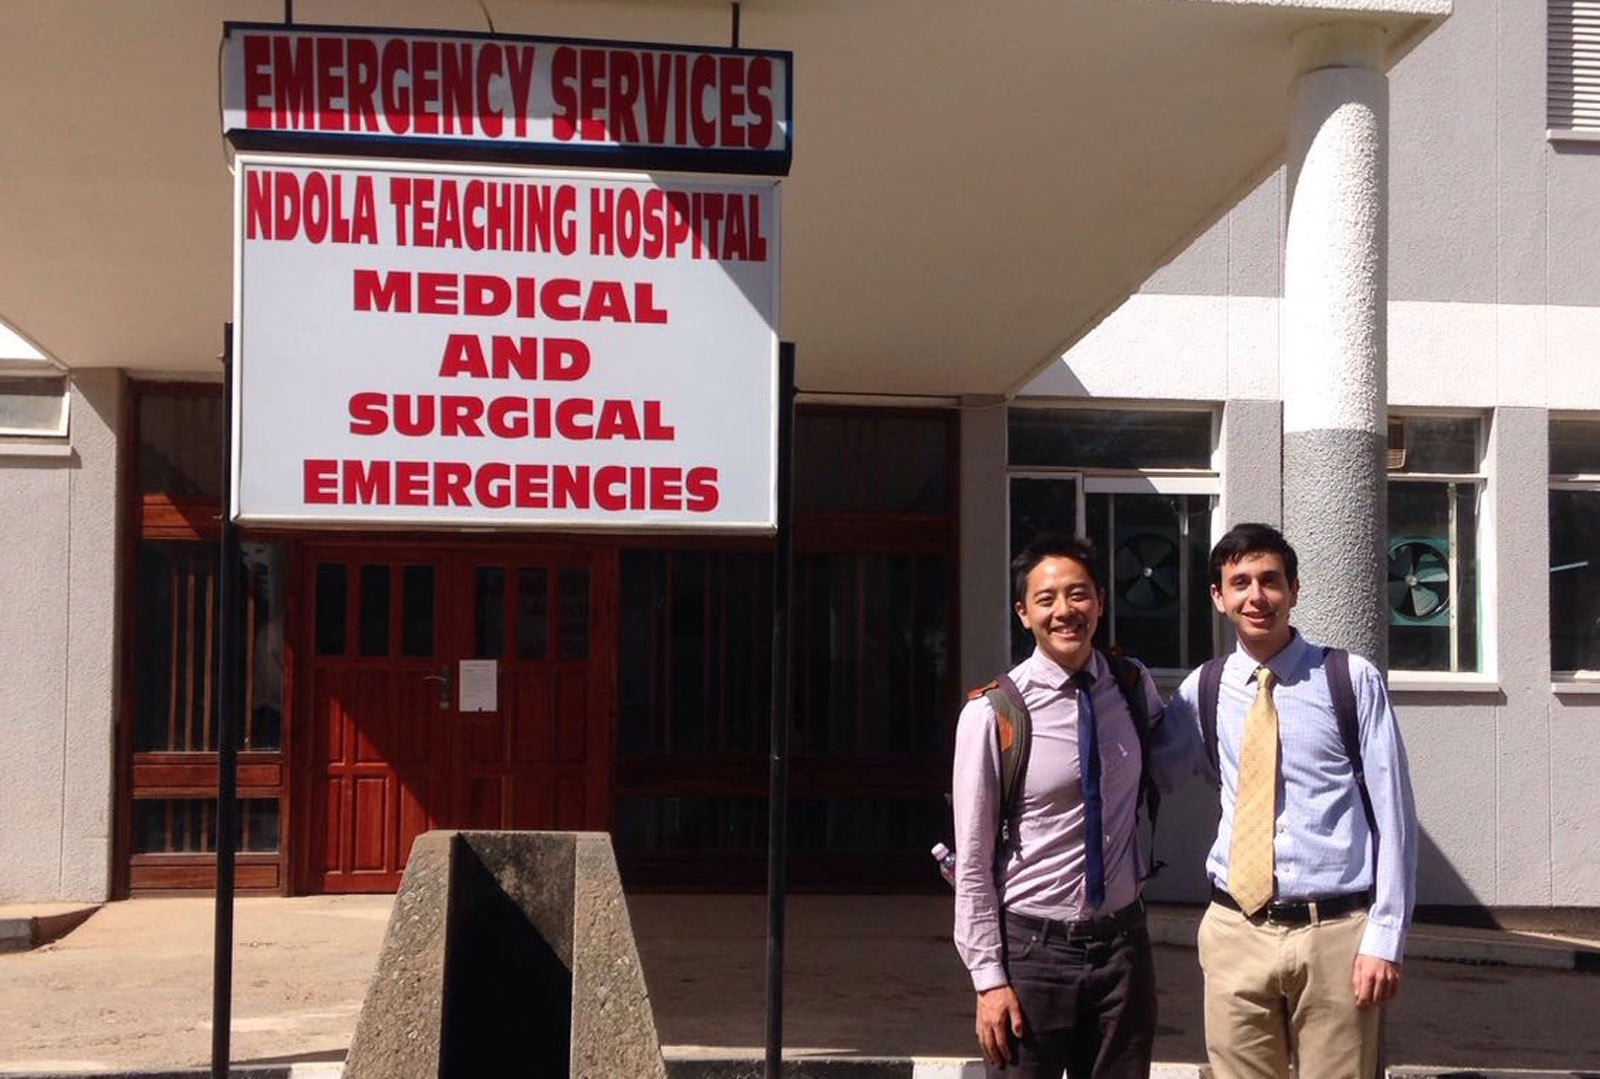 Medical Students David Wang and Darren Sultan